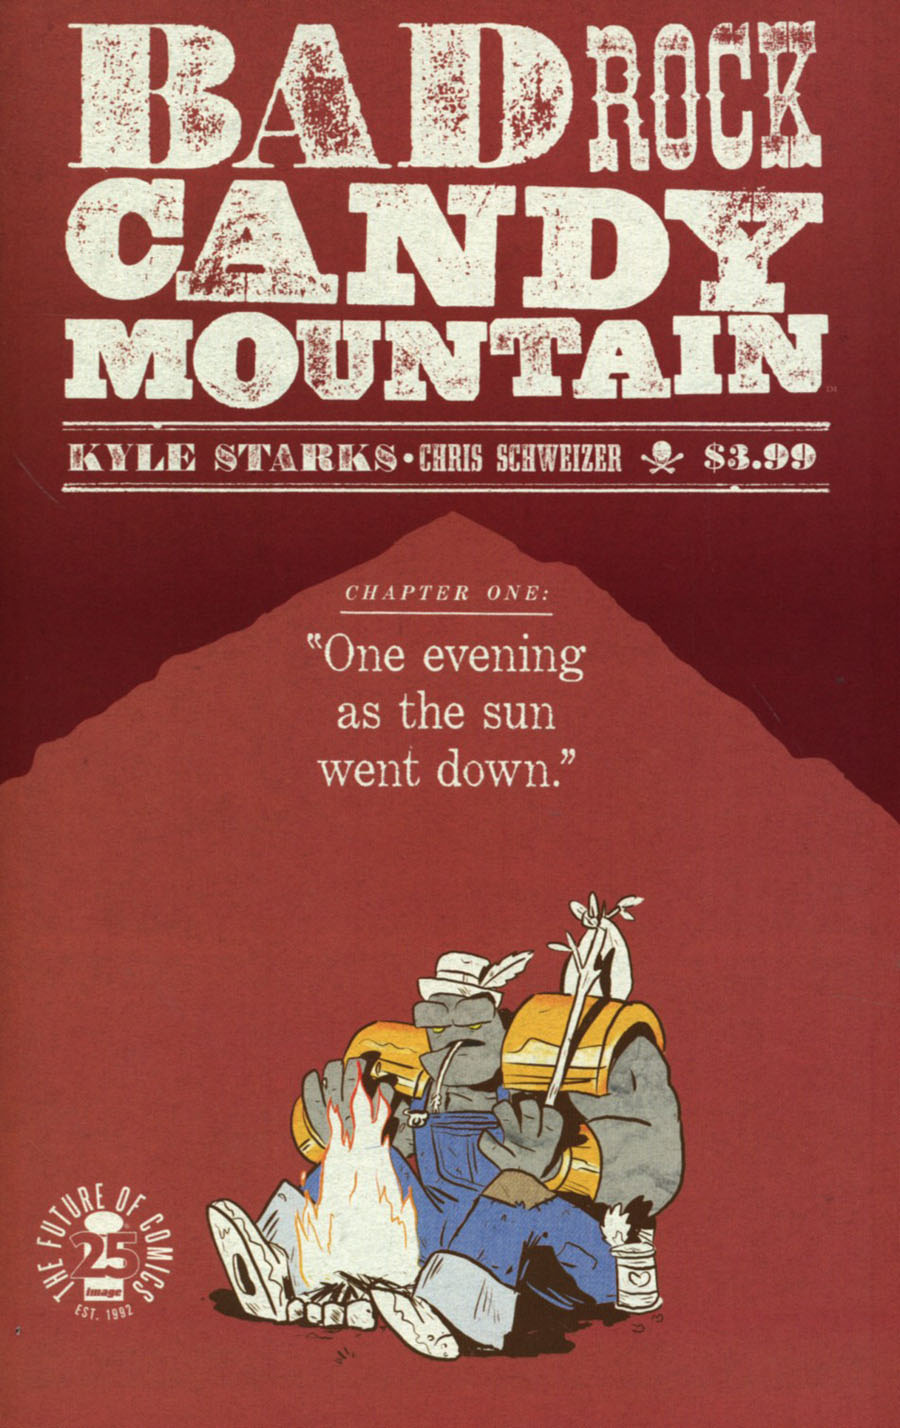 Rock Candy Mountain #1 Cover B Variant Kyler Starks April Fools Cover